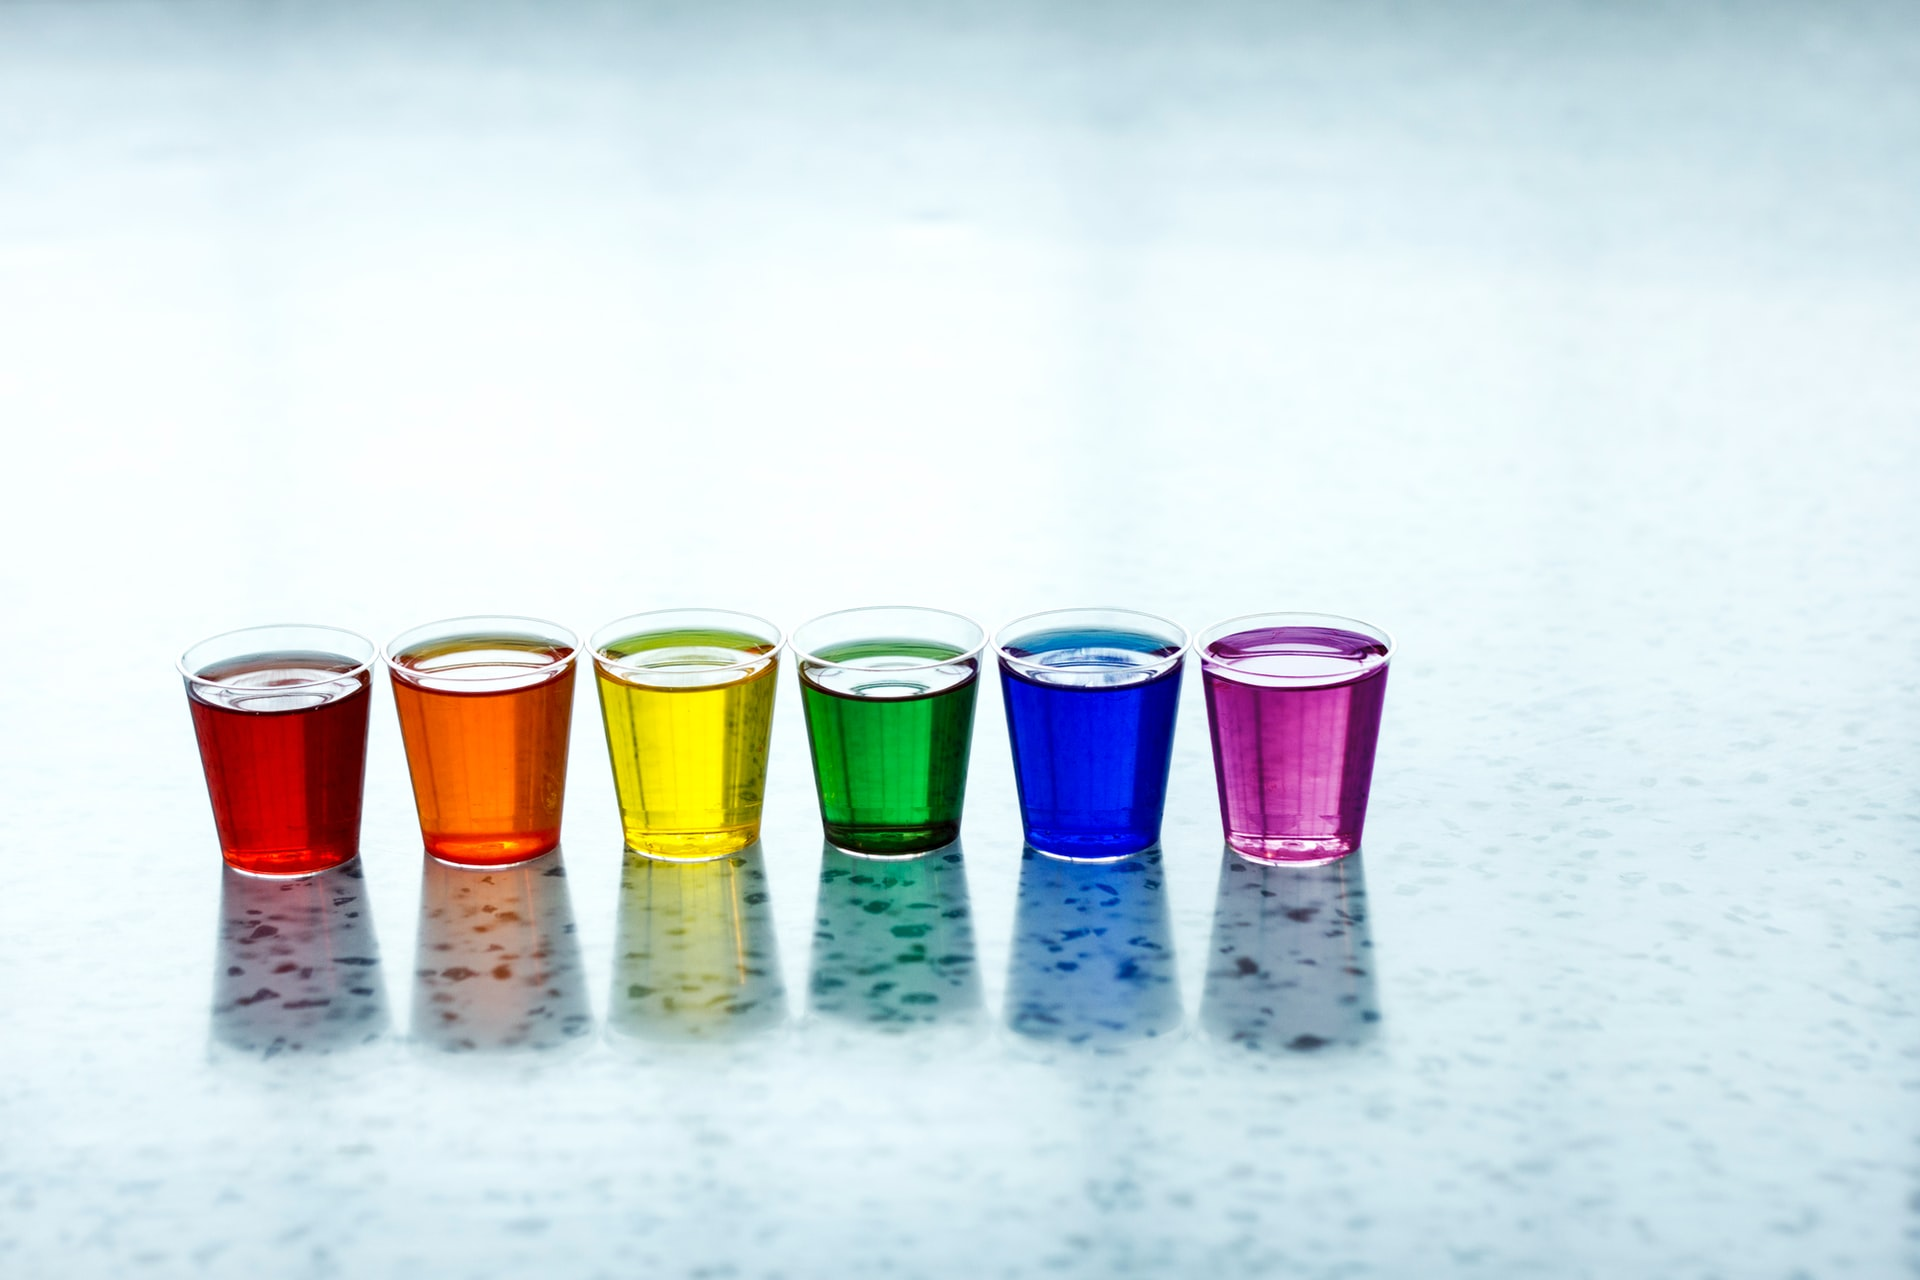 How To Find Cool Shot Glasses